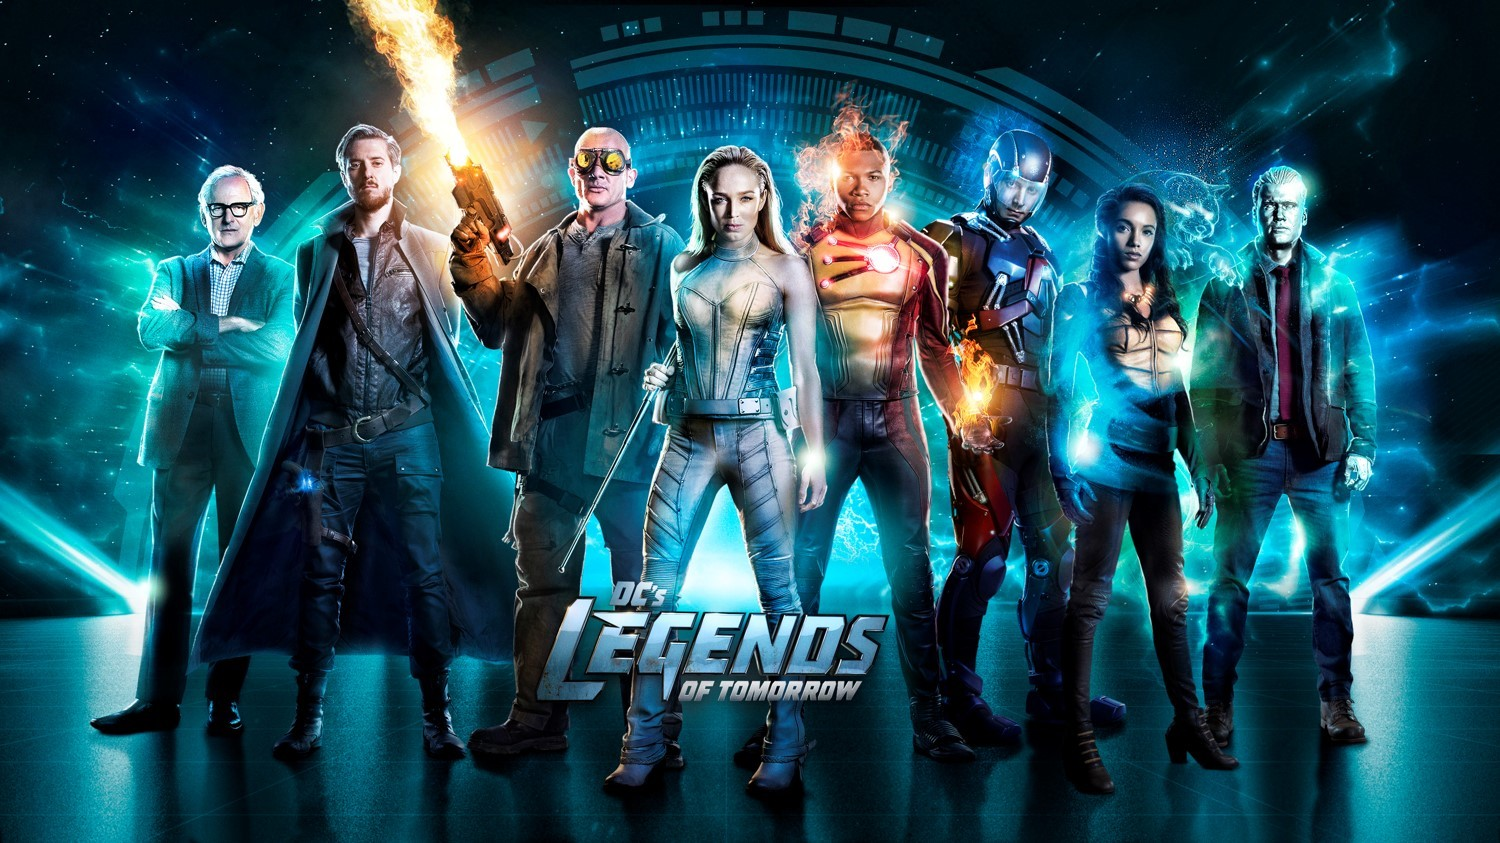 Dc S Legends Of Tomorrow Wallpaper And Background Image: Legends Of Tomorrow Season 3, HD Tv Shows, 4k Wallpapers